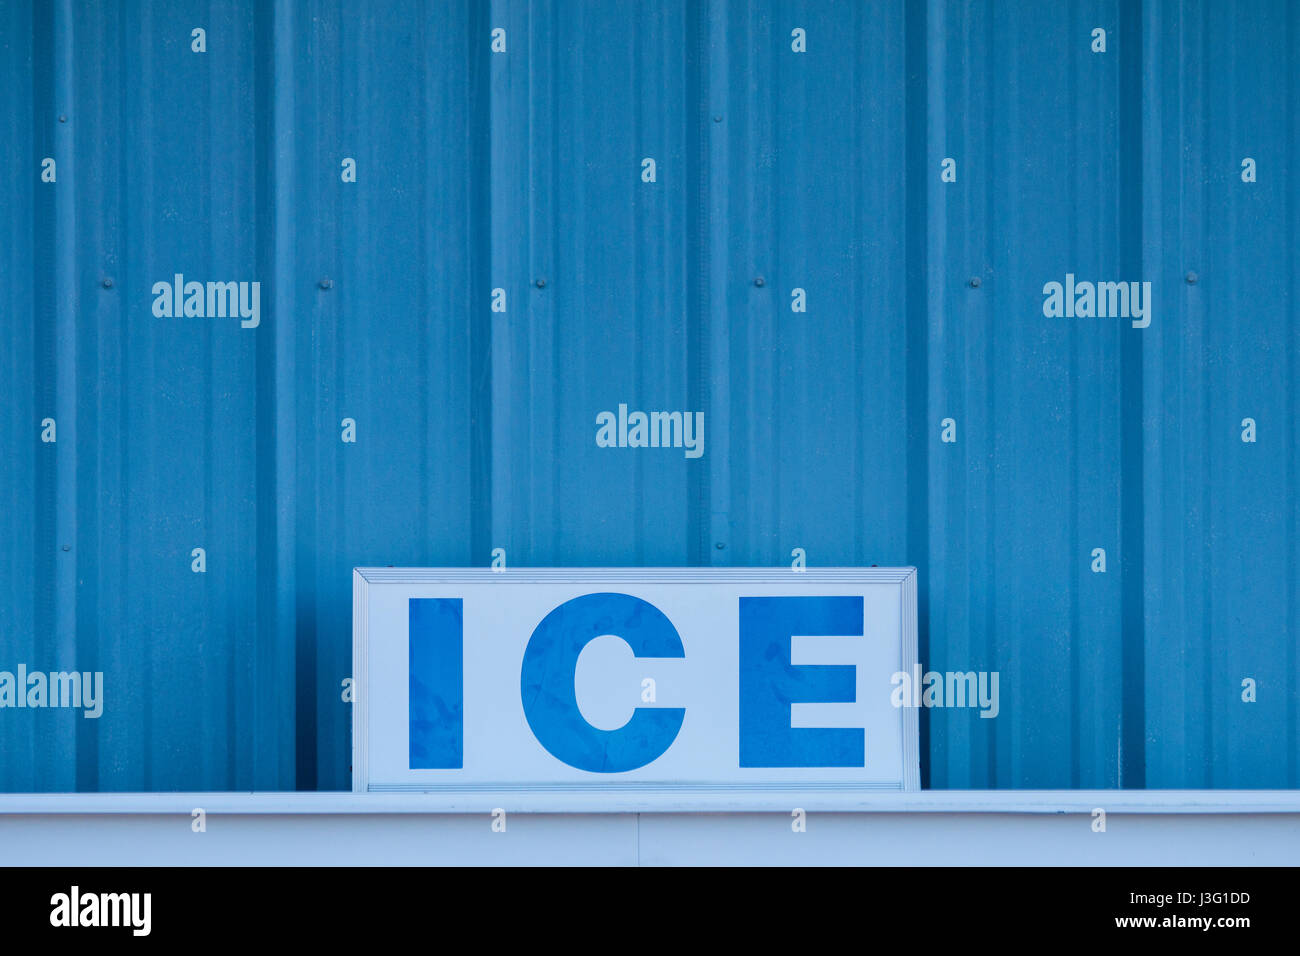 Word ICE in capital letters on sign in front of cold blue metal wall - Stock Image